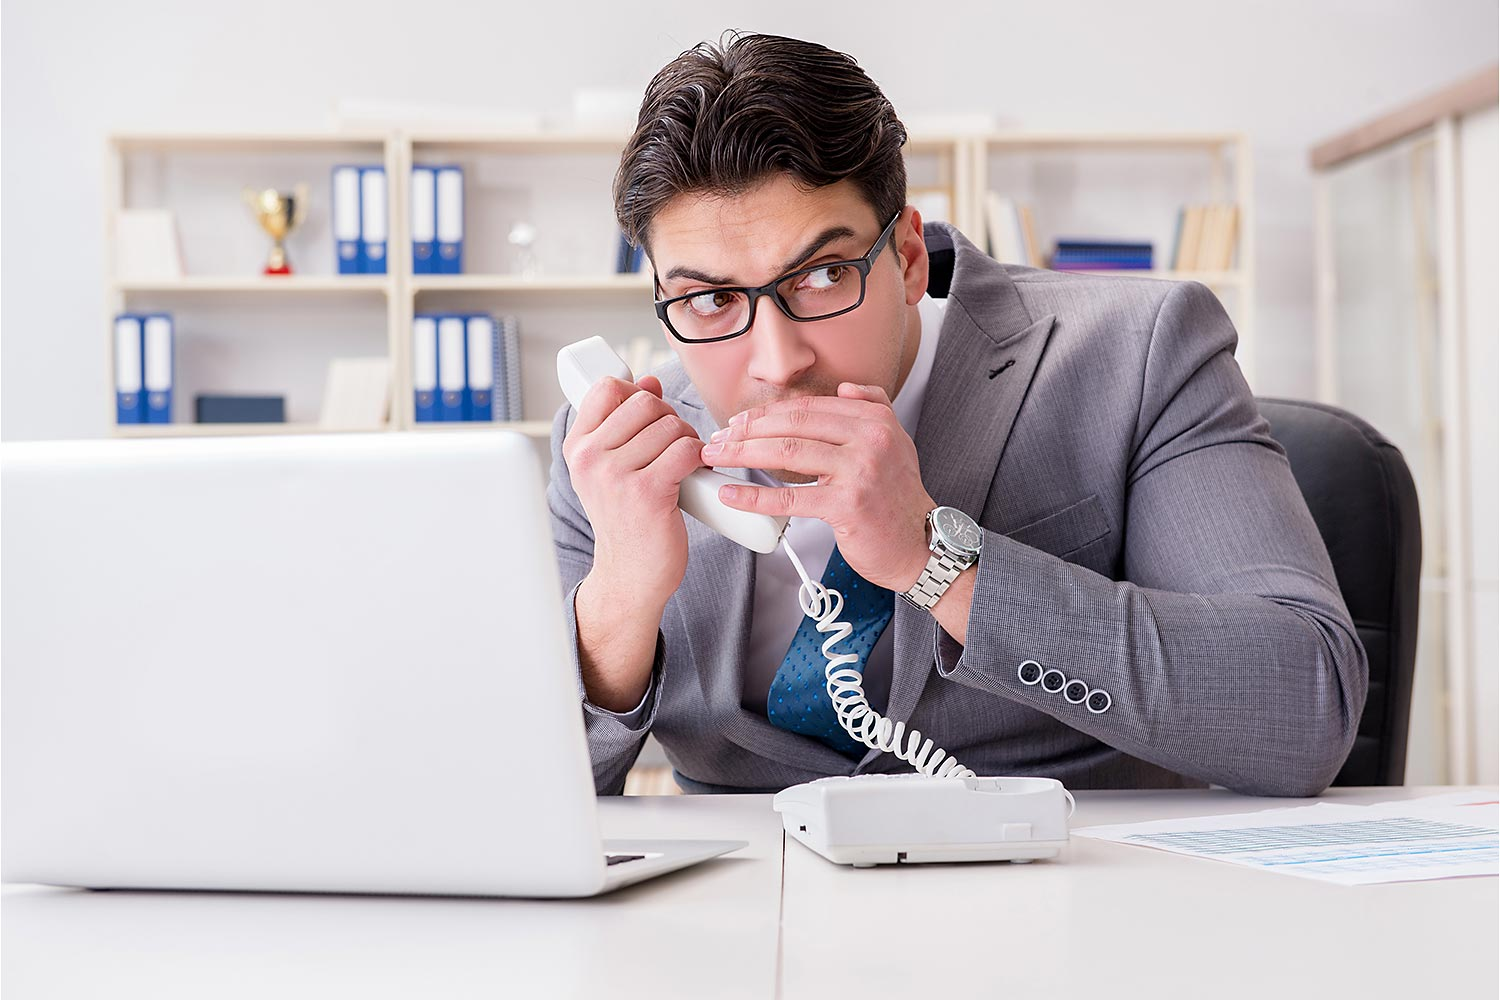 Sending work-related information to personal email account: a fast track to the firing-line